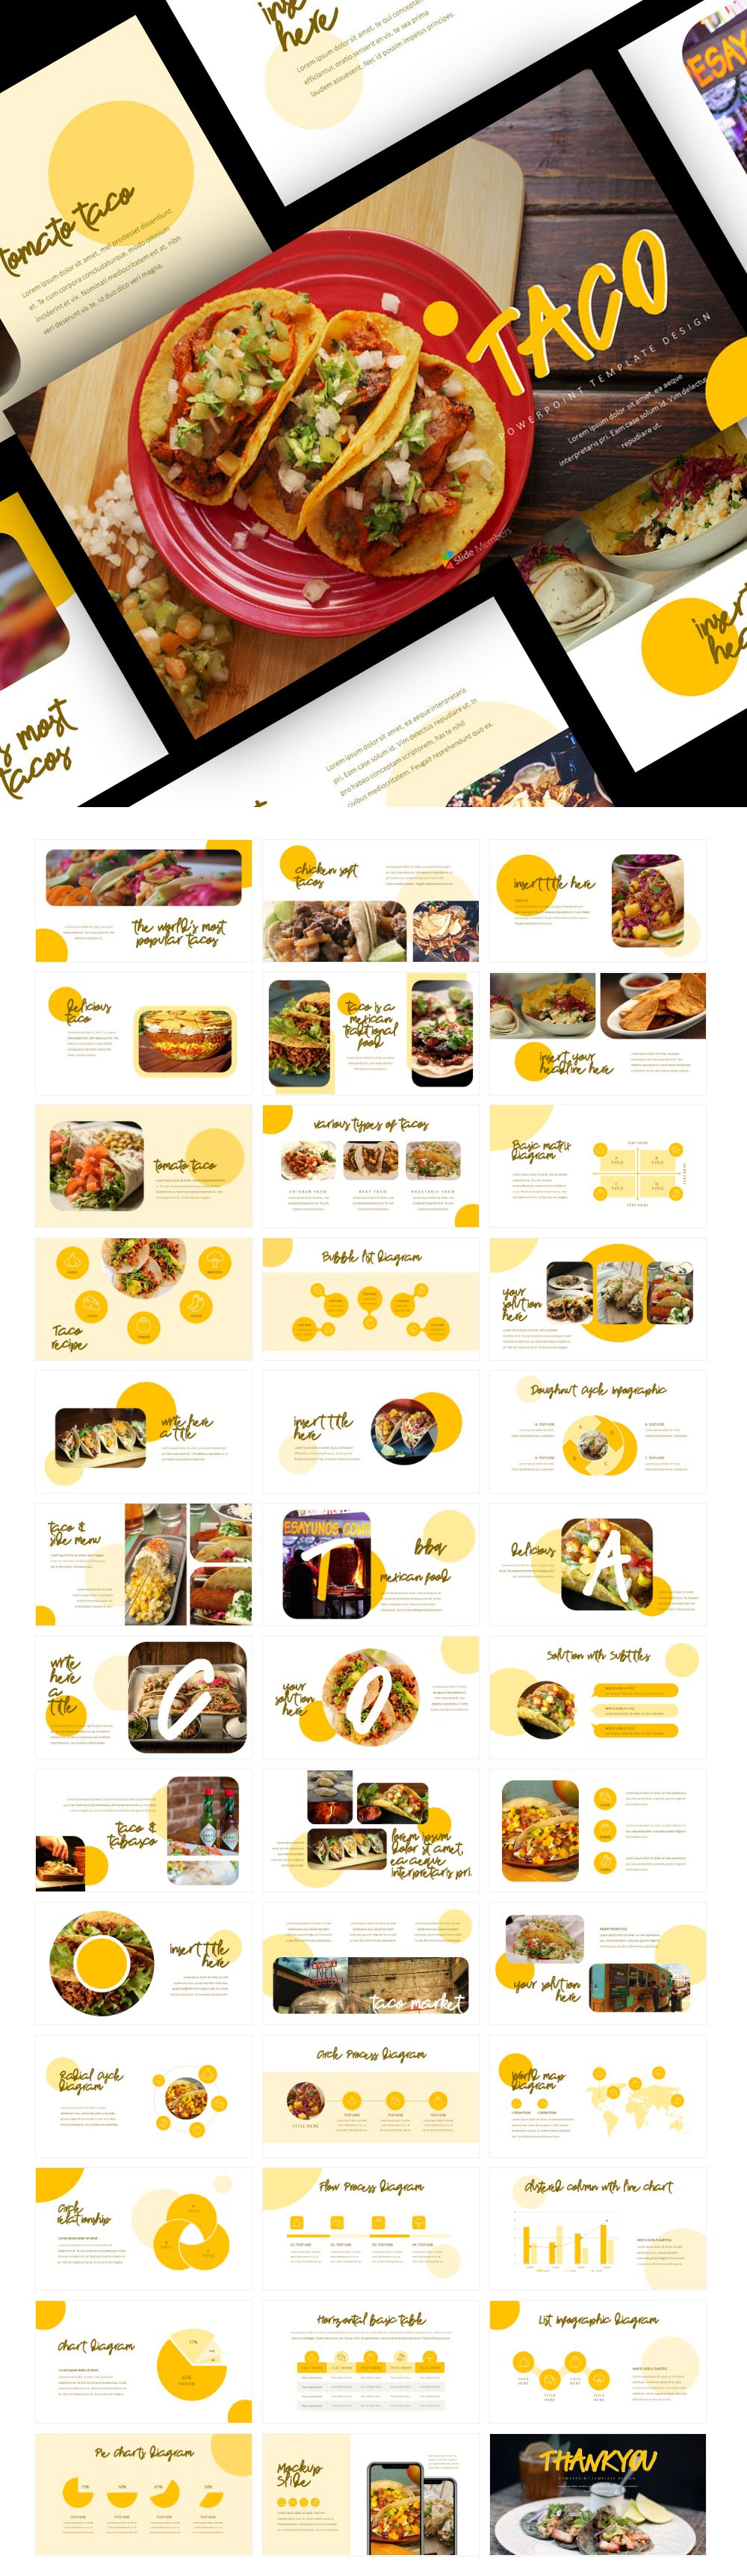 Mexican Taco Restaurant Food Powerpoint Design Restaurant Recipes Taco Restaurant Food